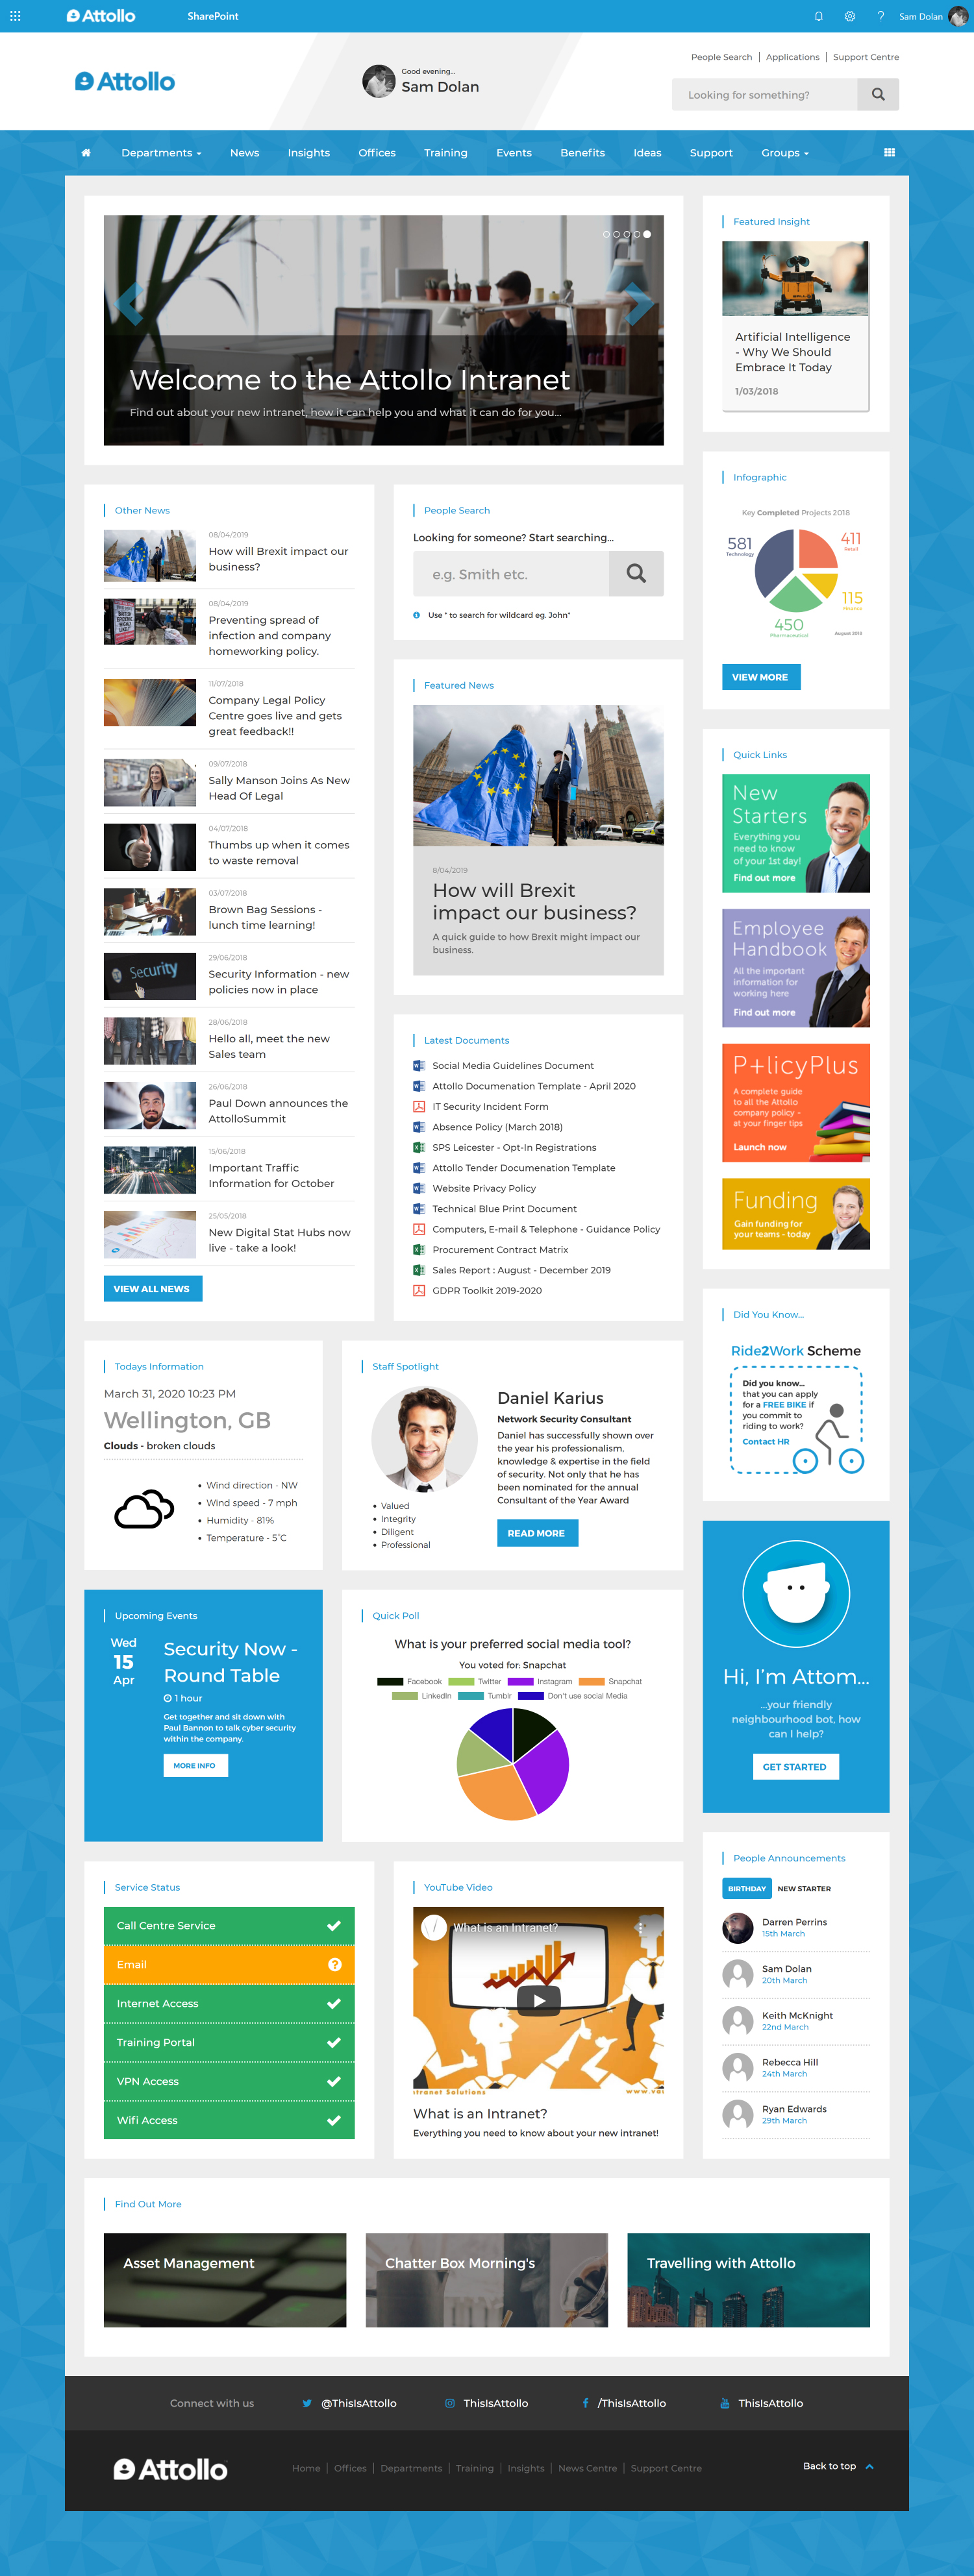 Attollo-Intranet---Product-Screenshots-Home.jpg